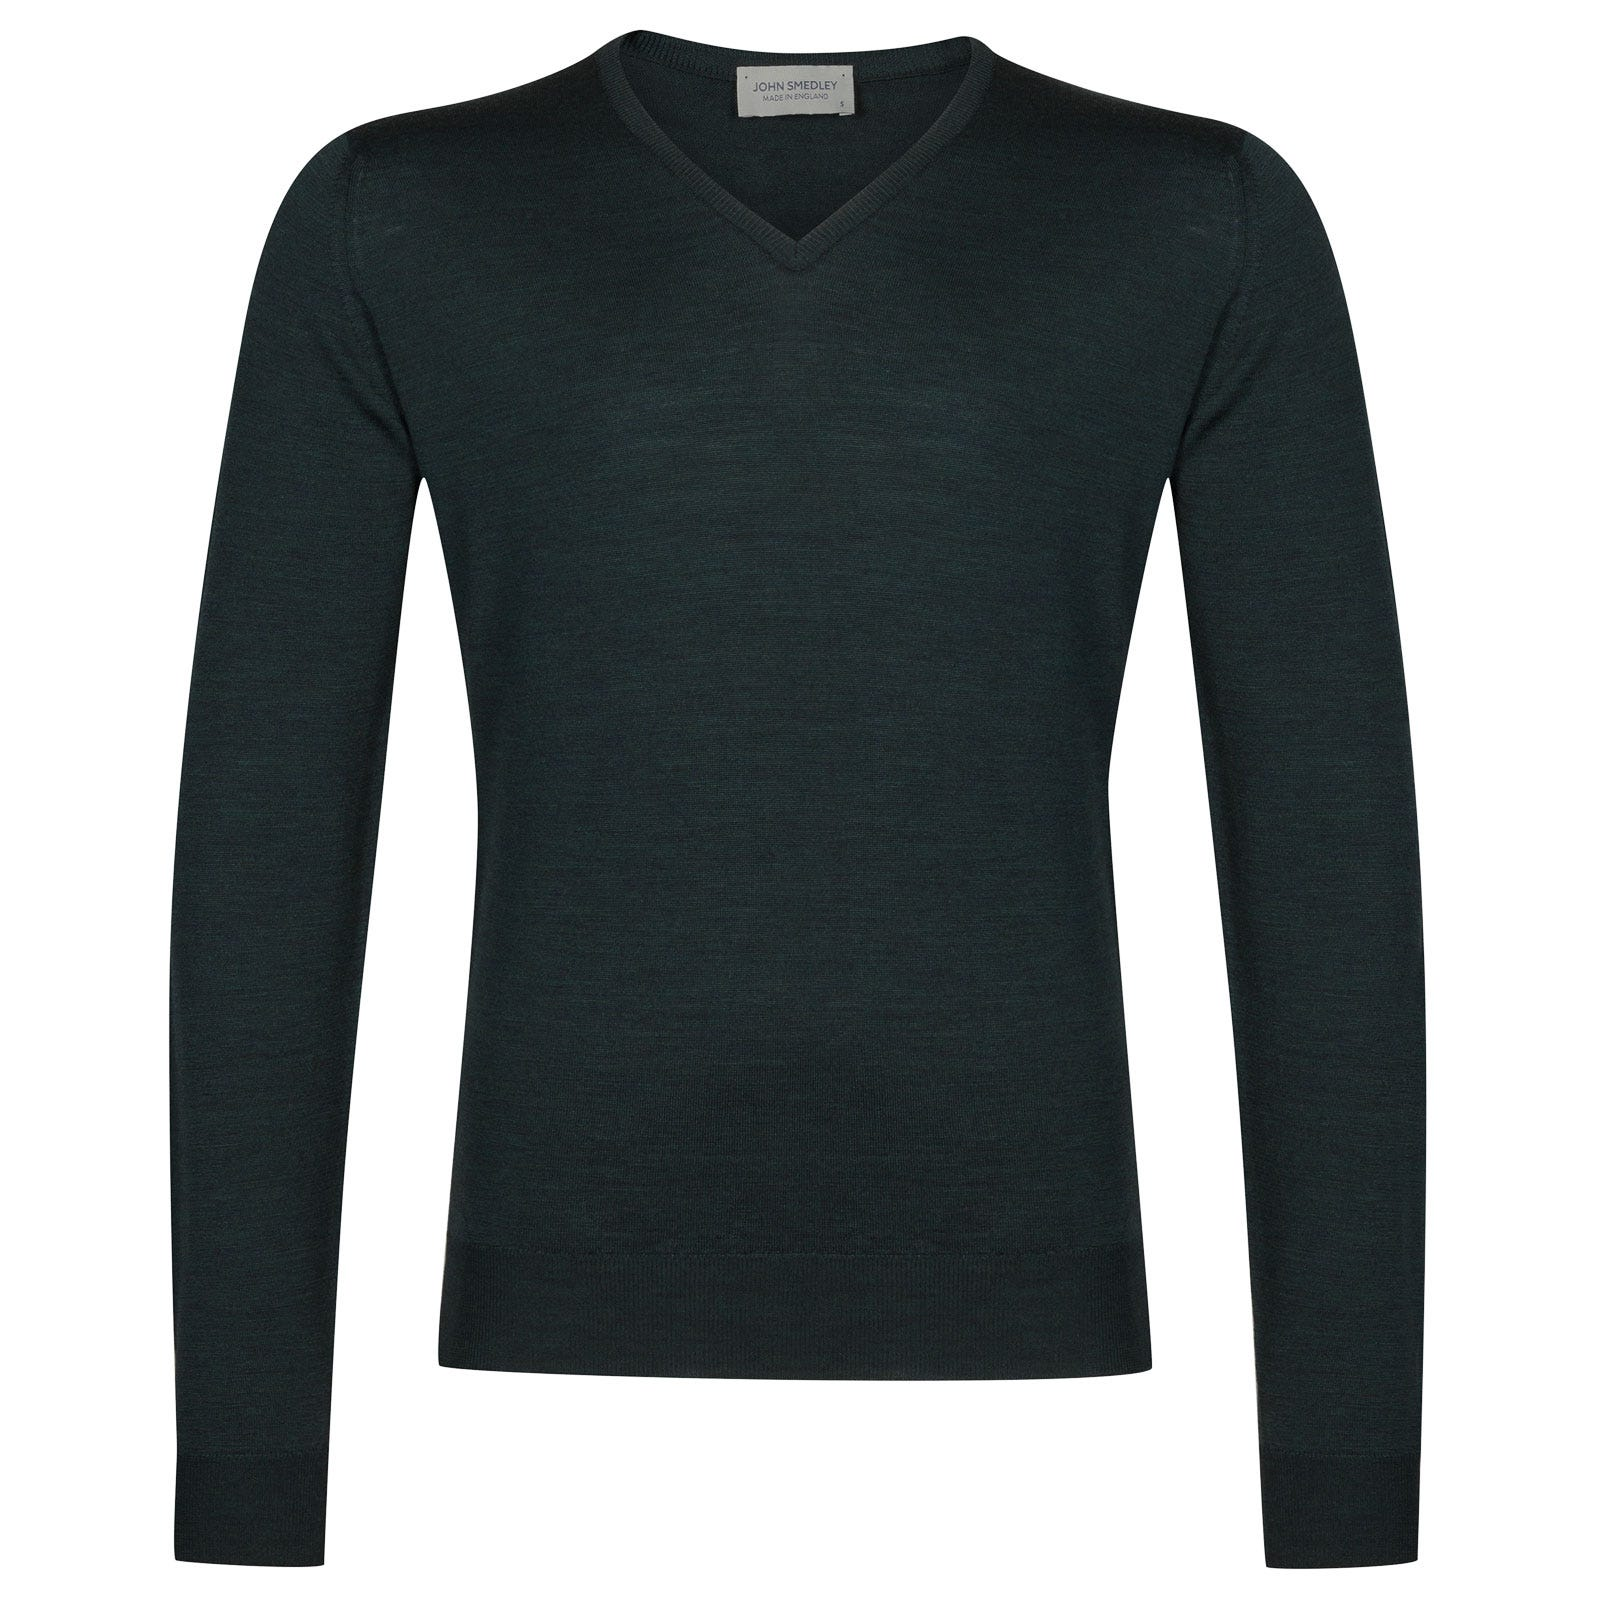 John Smedley Blenheim Merino Wool Pullover in Racing Green-XL